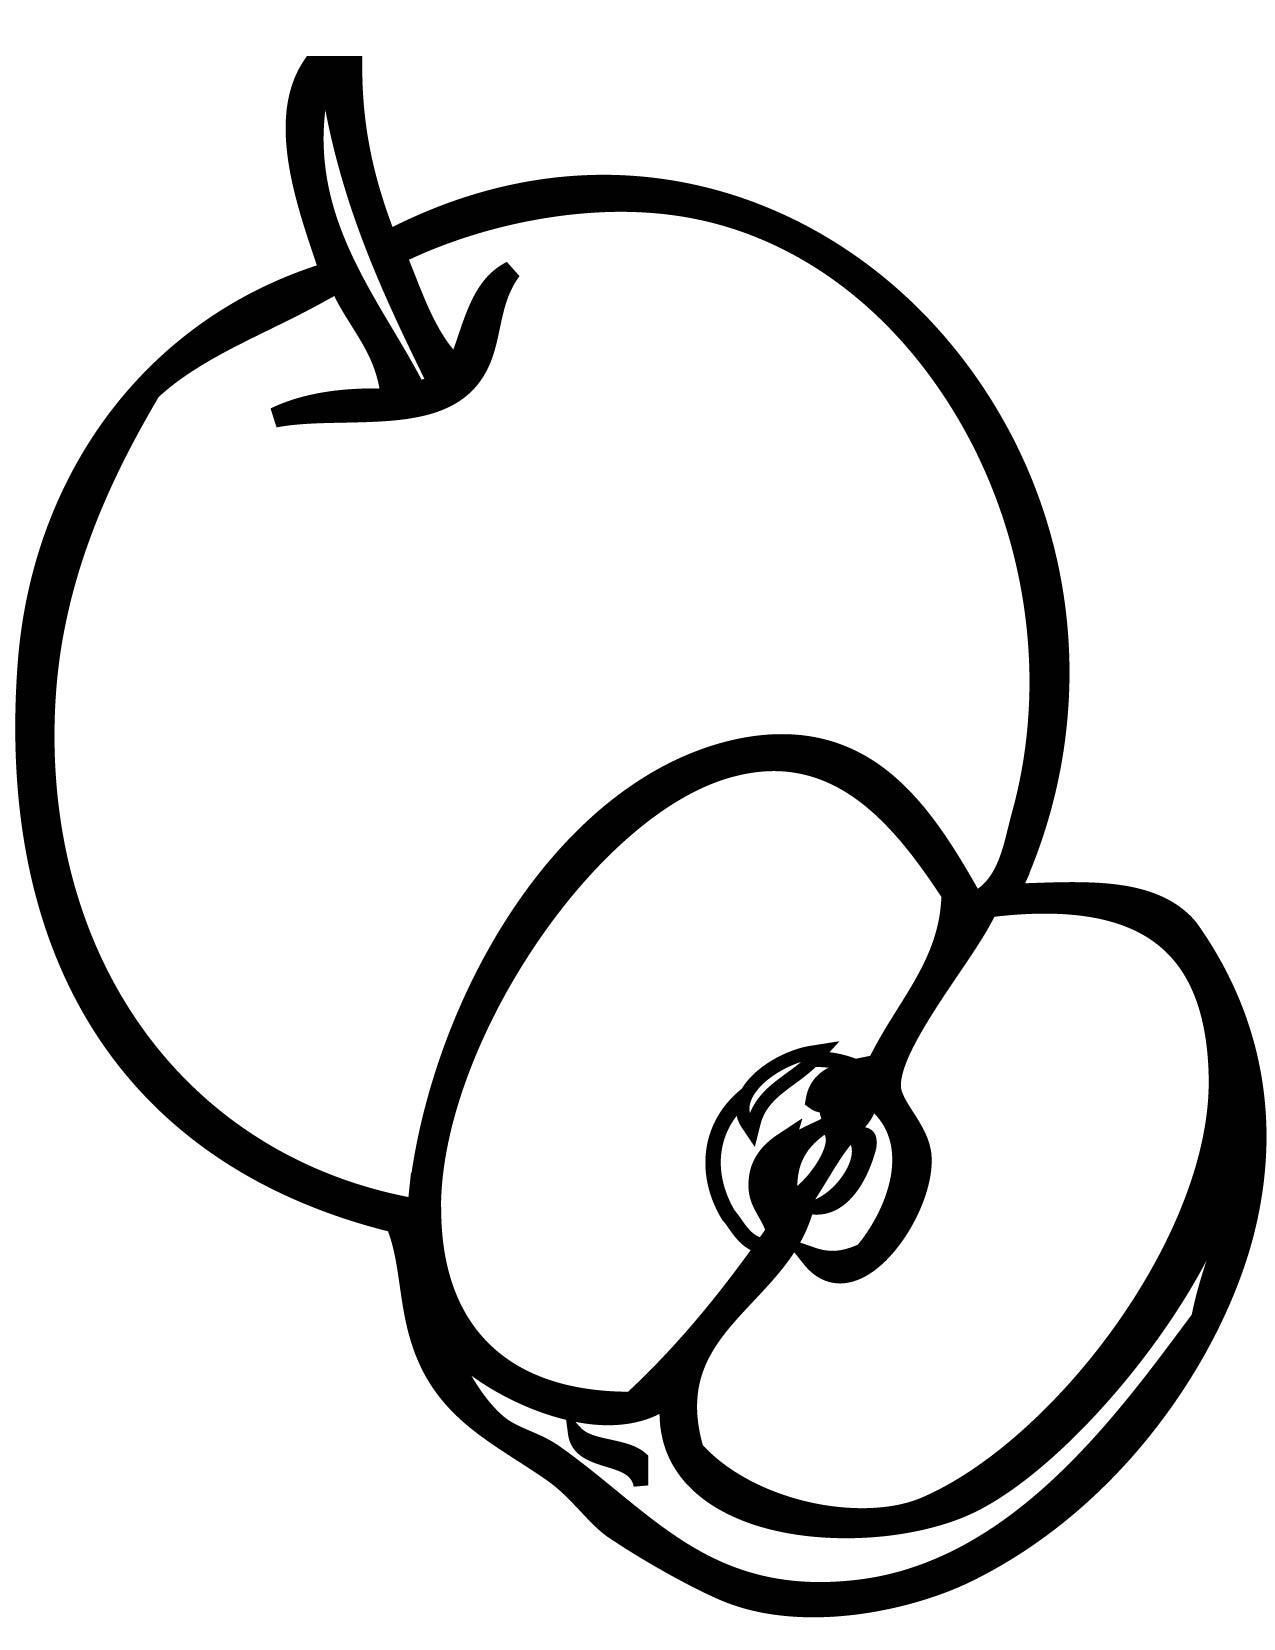 coloring image of an apple free printable apple coloring pages for kids image an of apple coloring